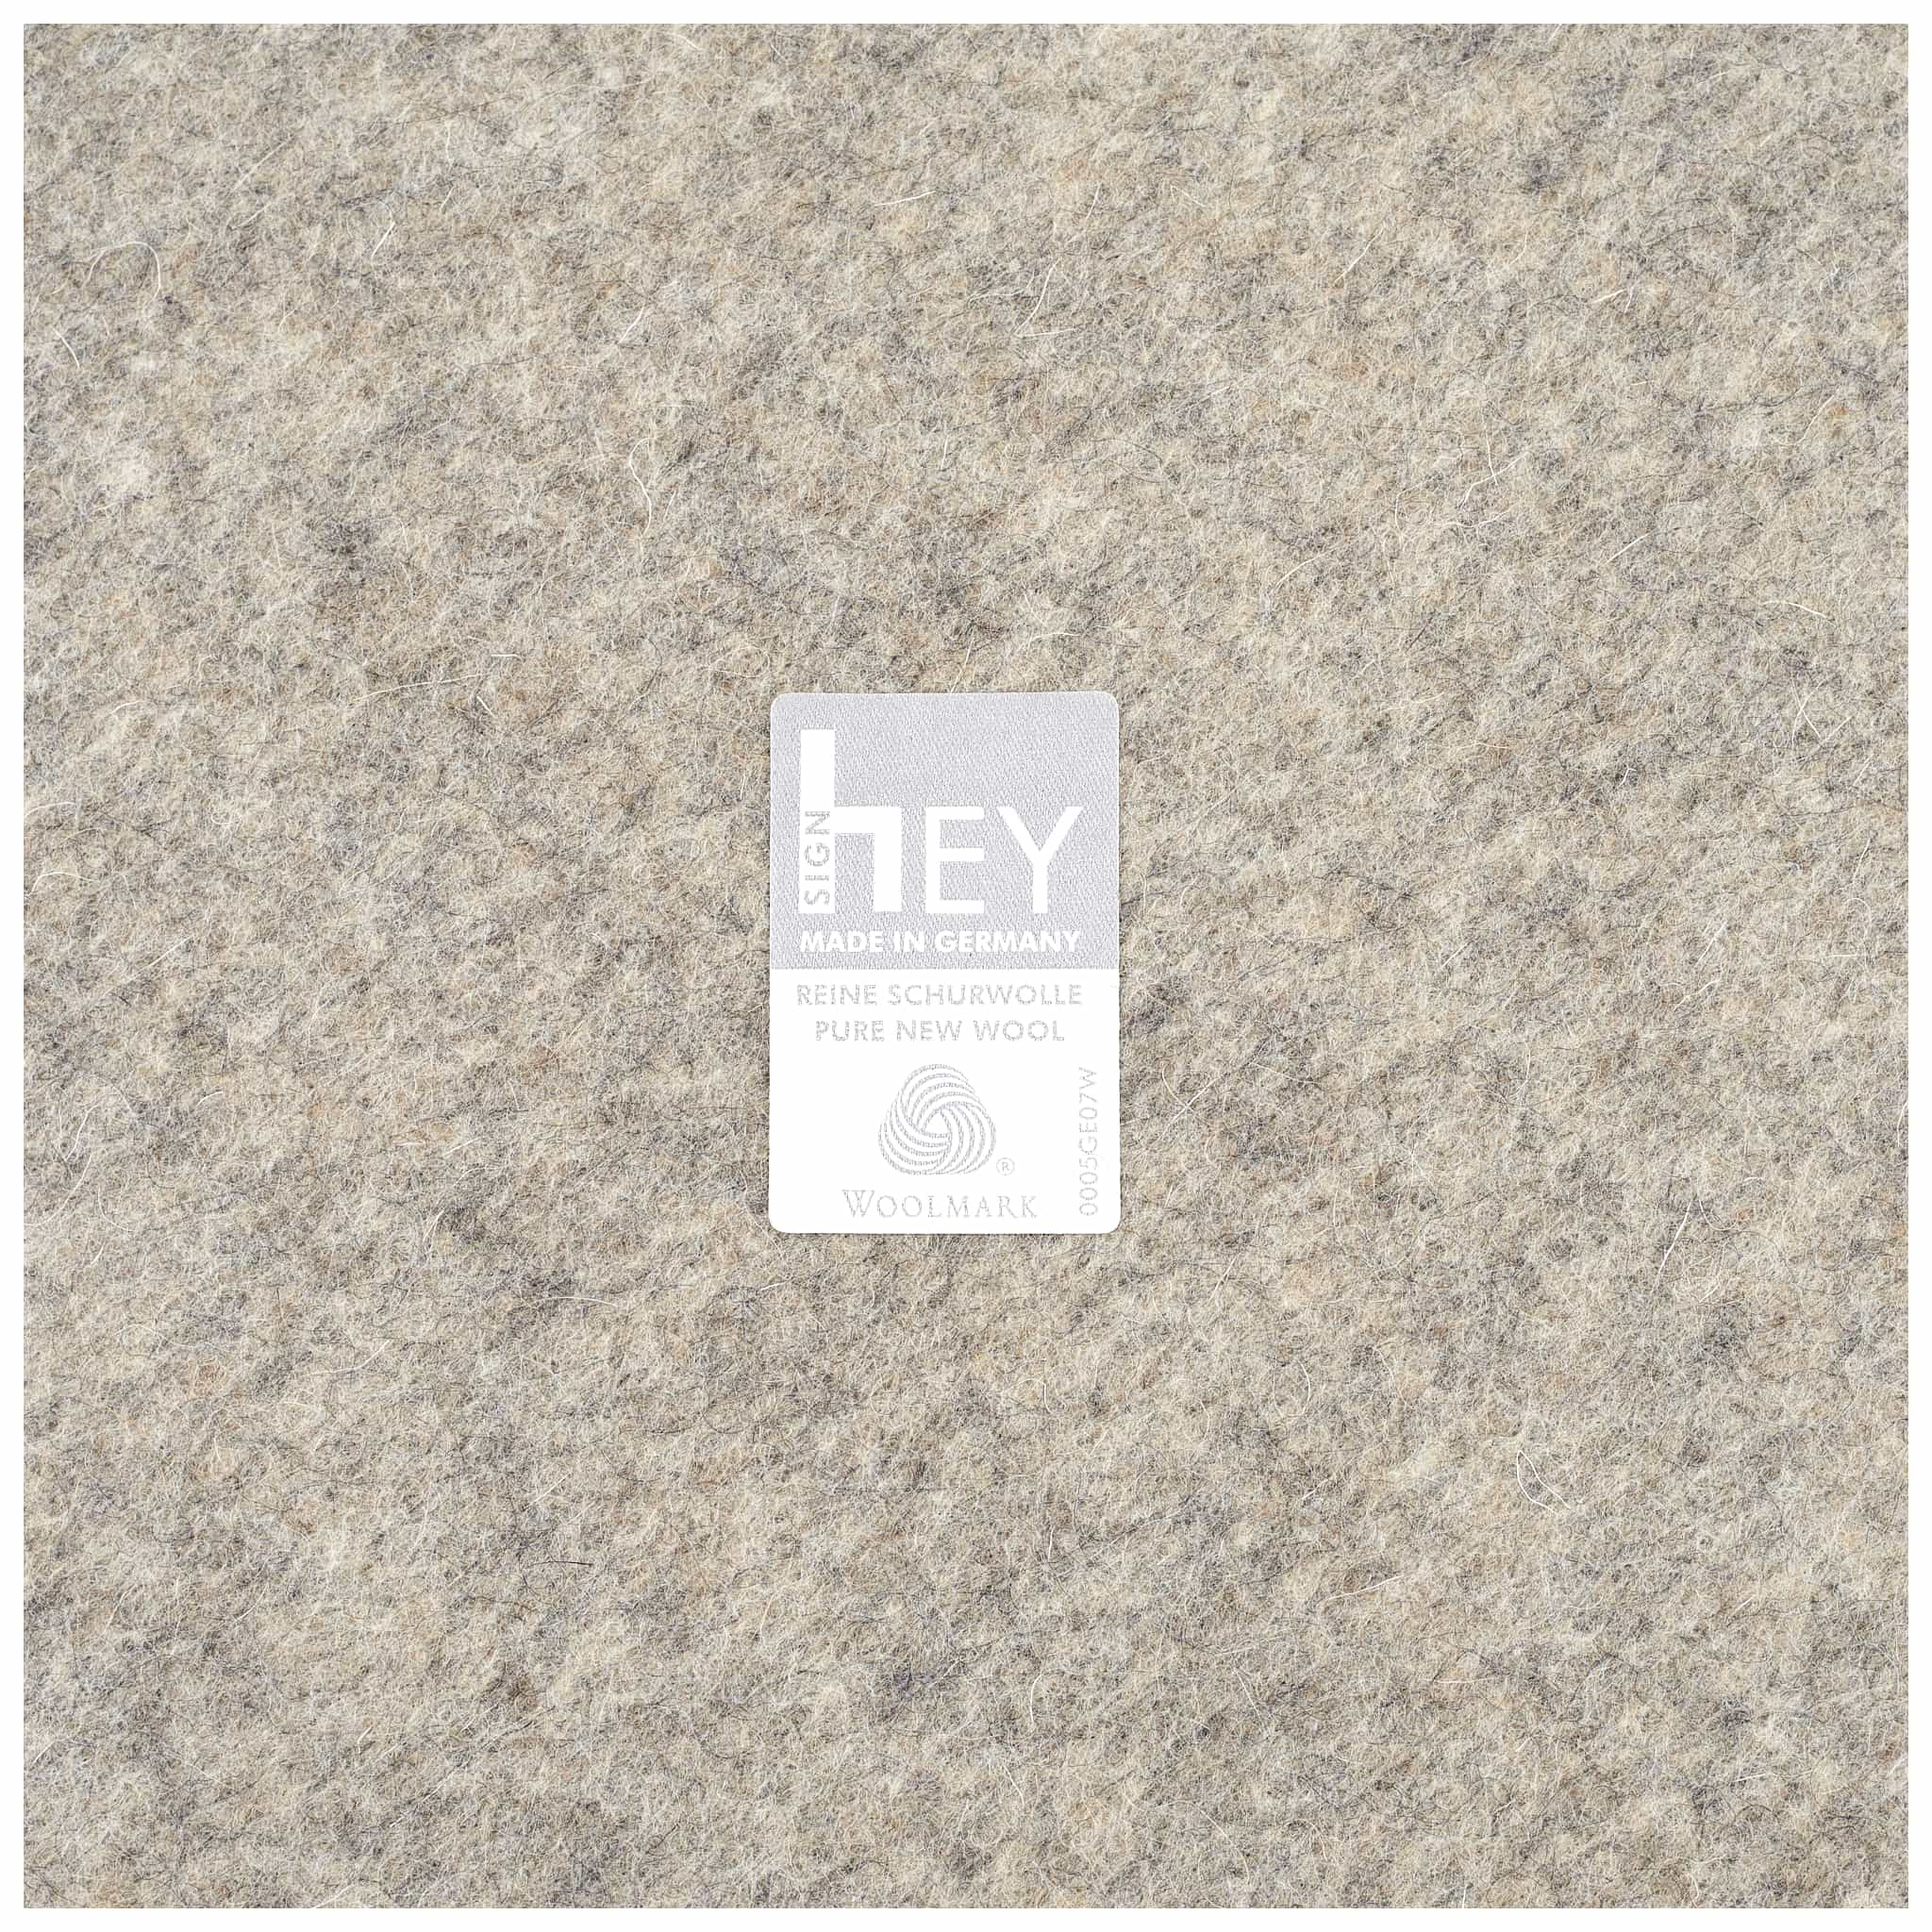 Round Felt Placemat 30cm in Light Grey by Hey-Sign 300153007 Label